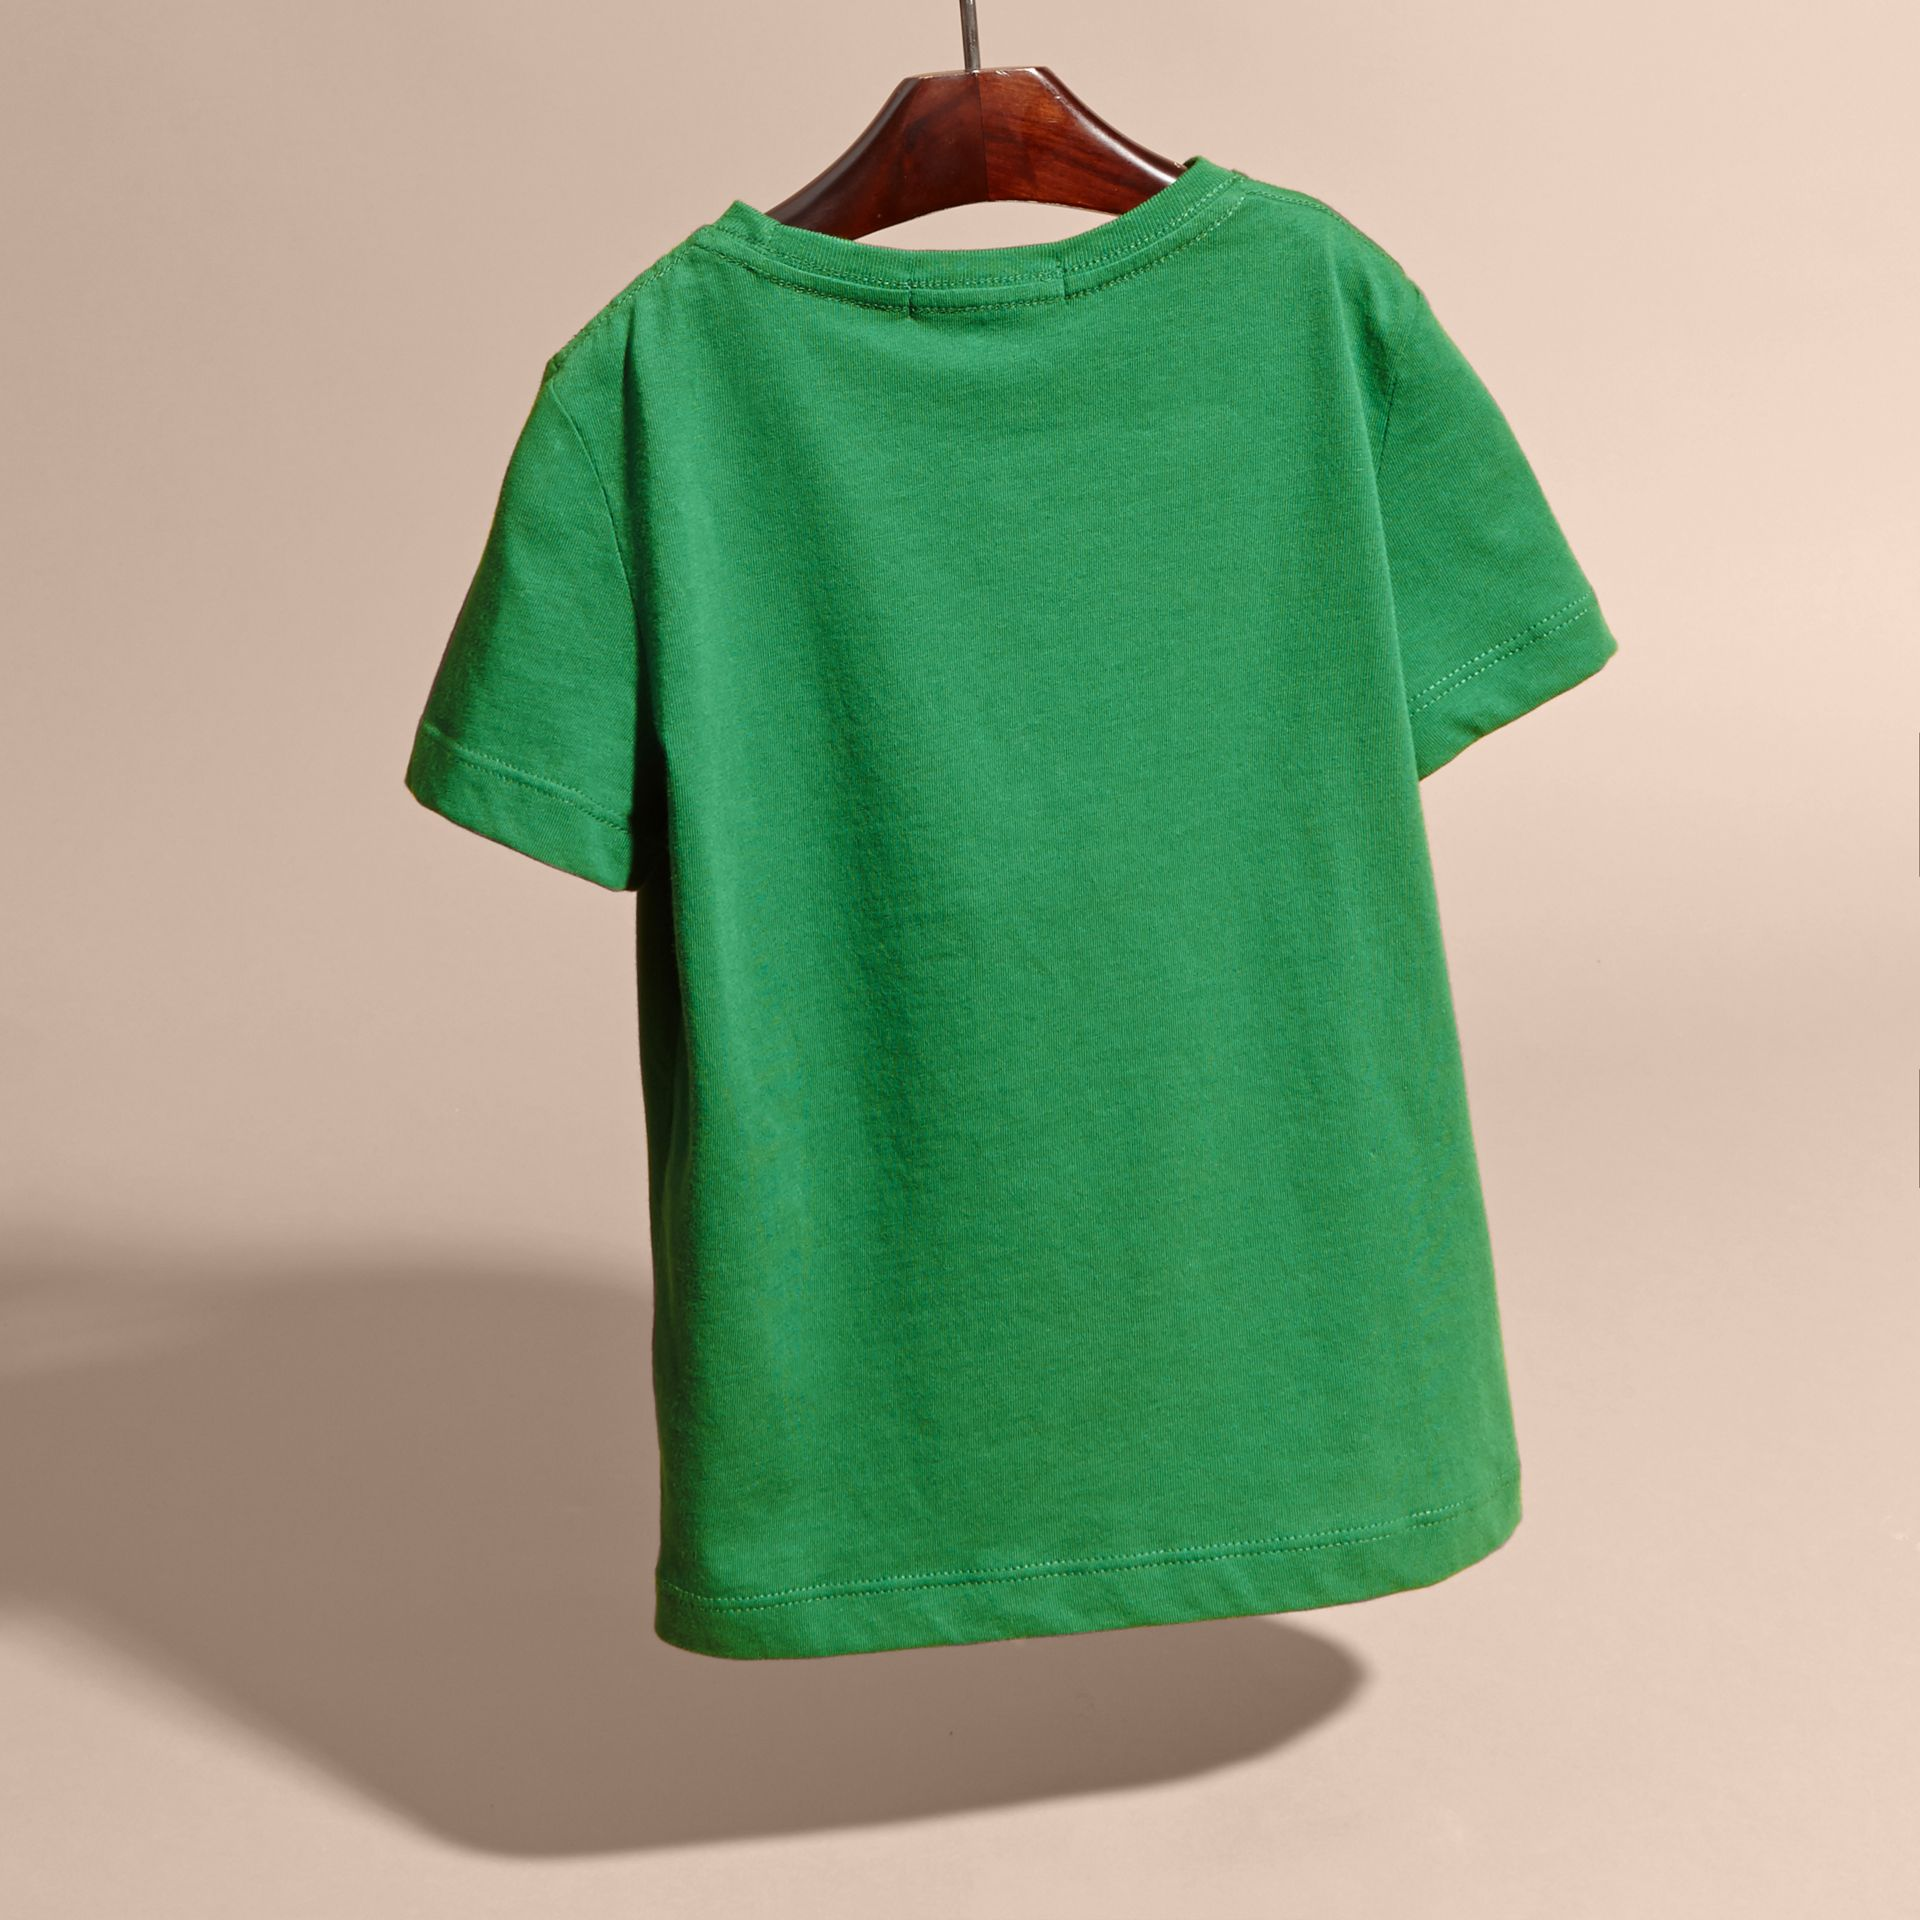 Crew Neck Cotton T-shirt in Bright Pigment Green - gallery image 4